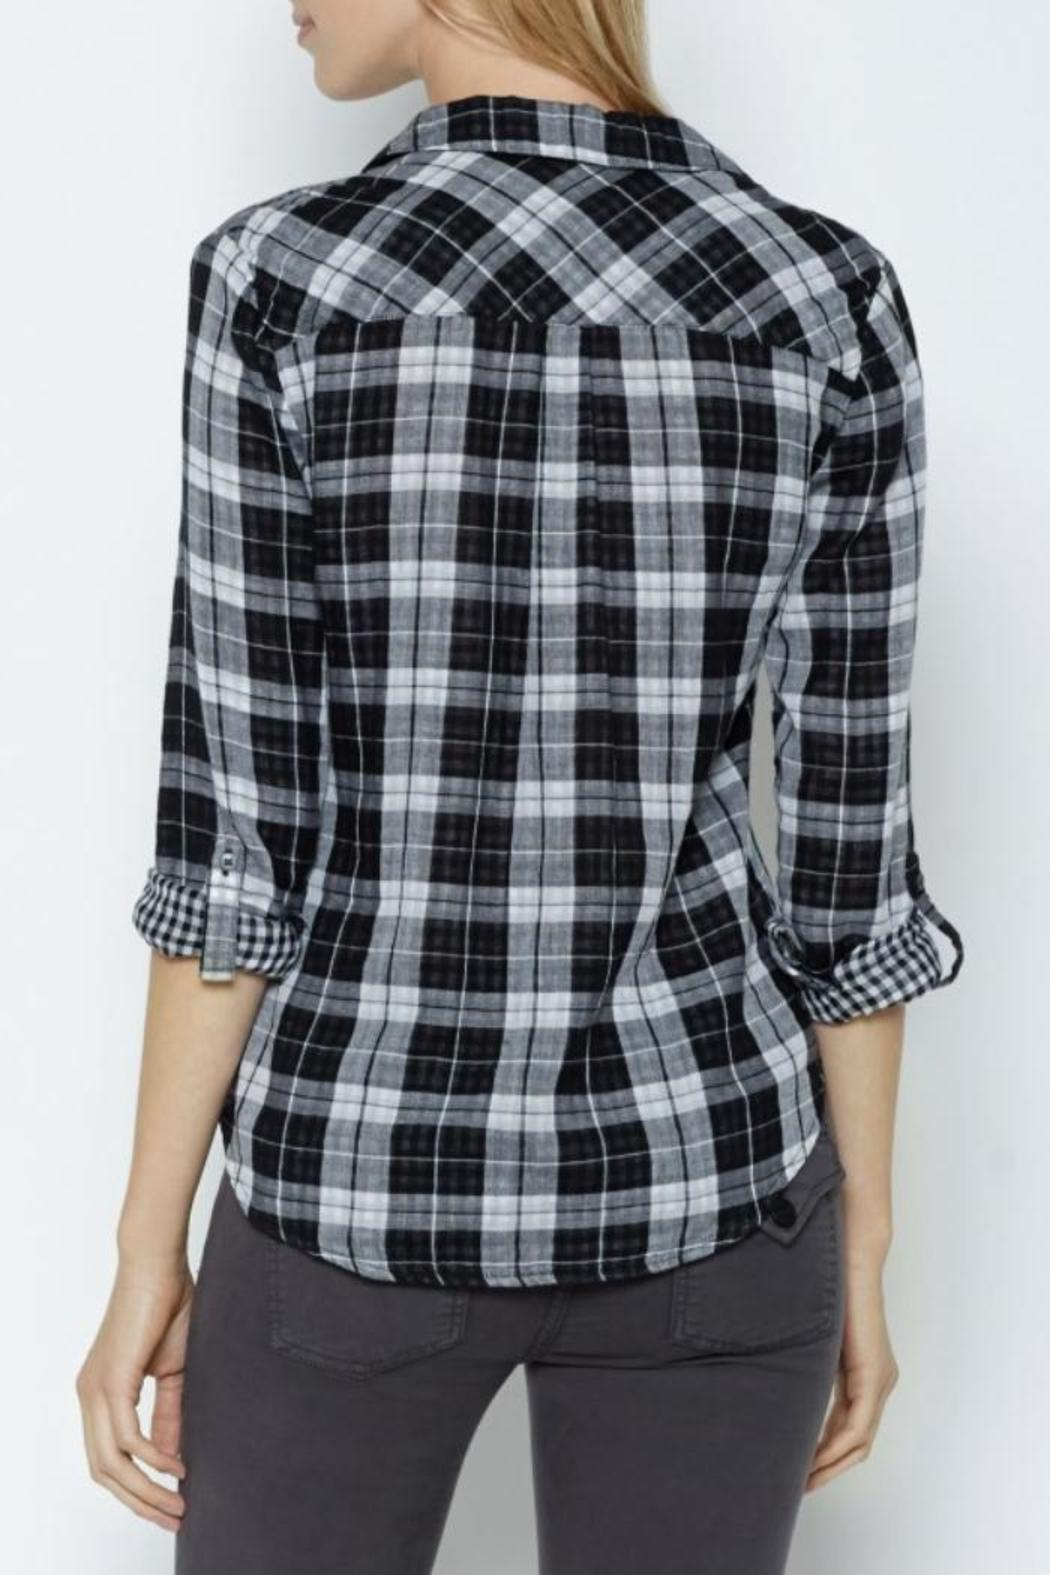 Joie Cydnee Plaid Shirt - Front Full Image